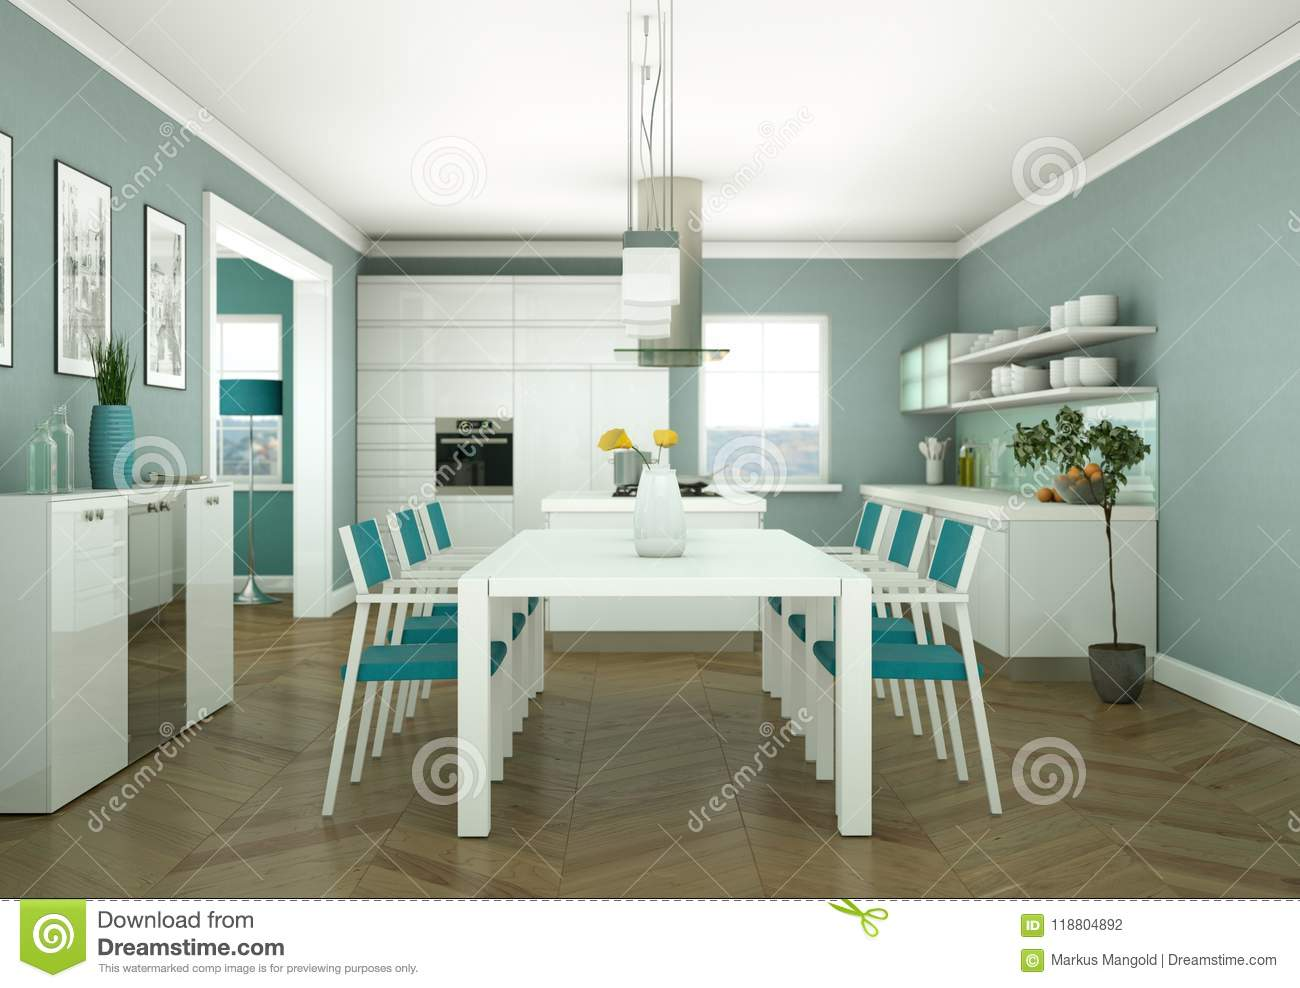 Decoration Interieur Moderne Appartement Dining Room Interior Design In Modern Appartment Stock Photo